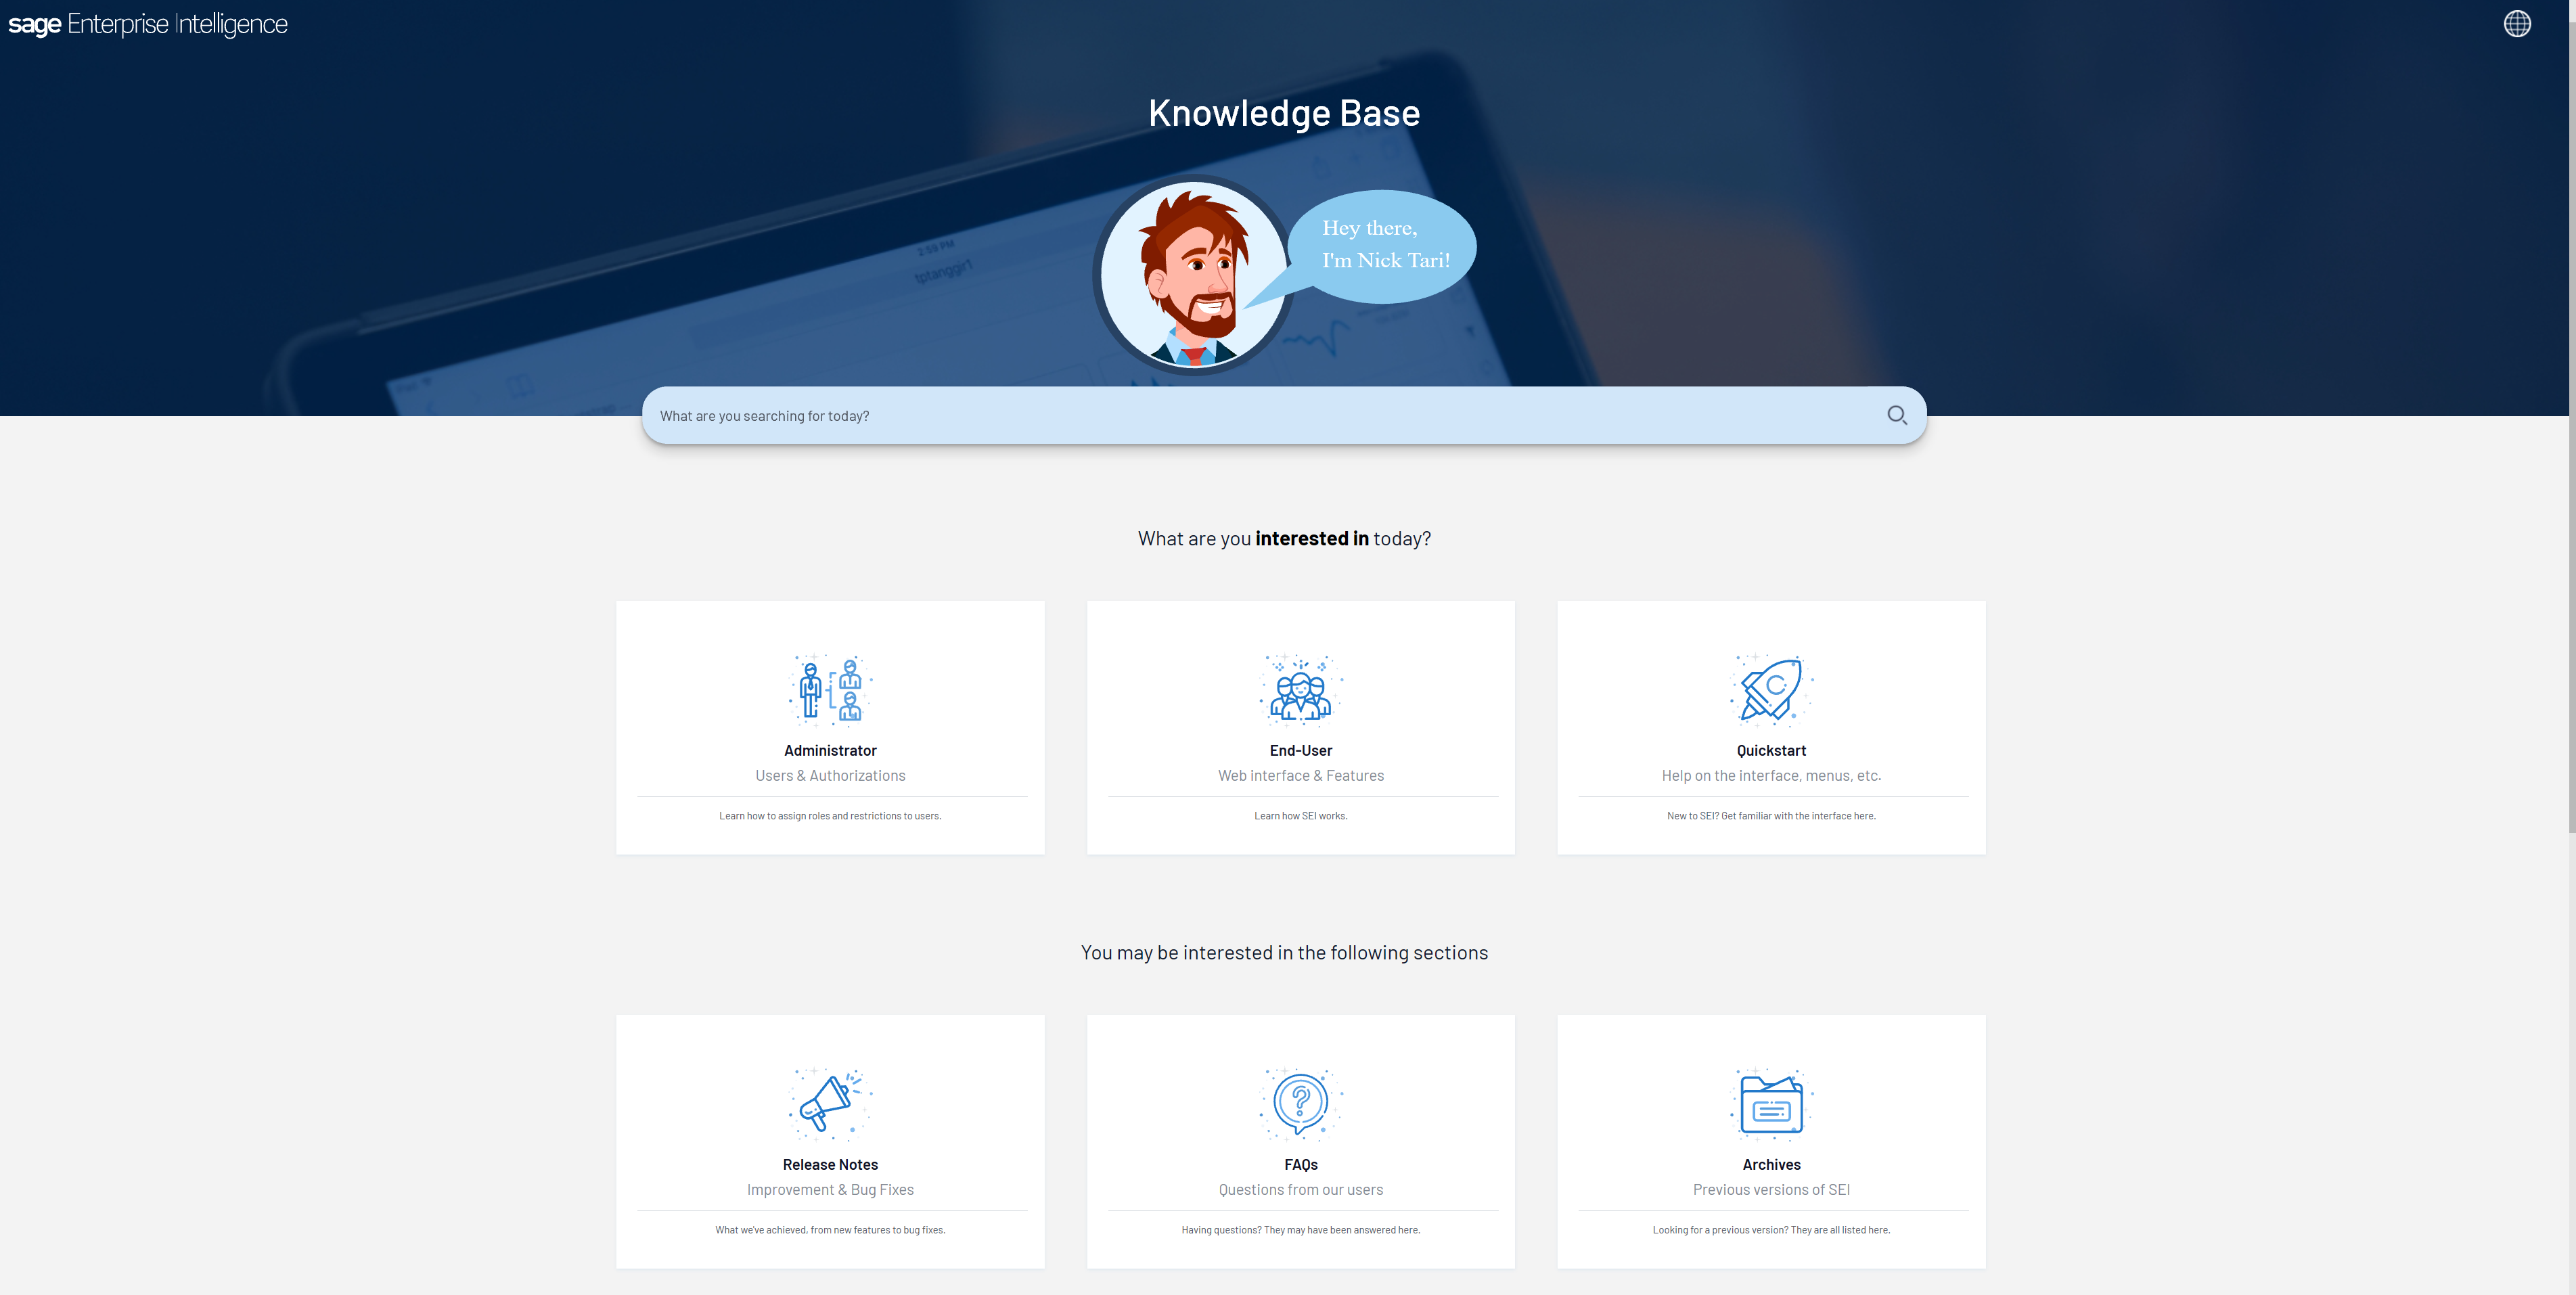 SEI Knowledge Base